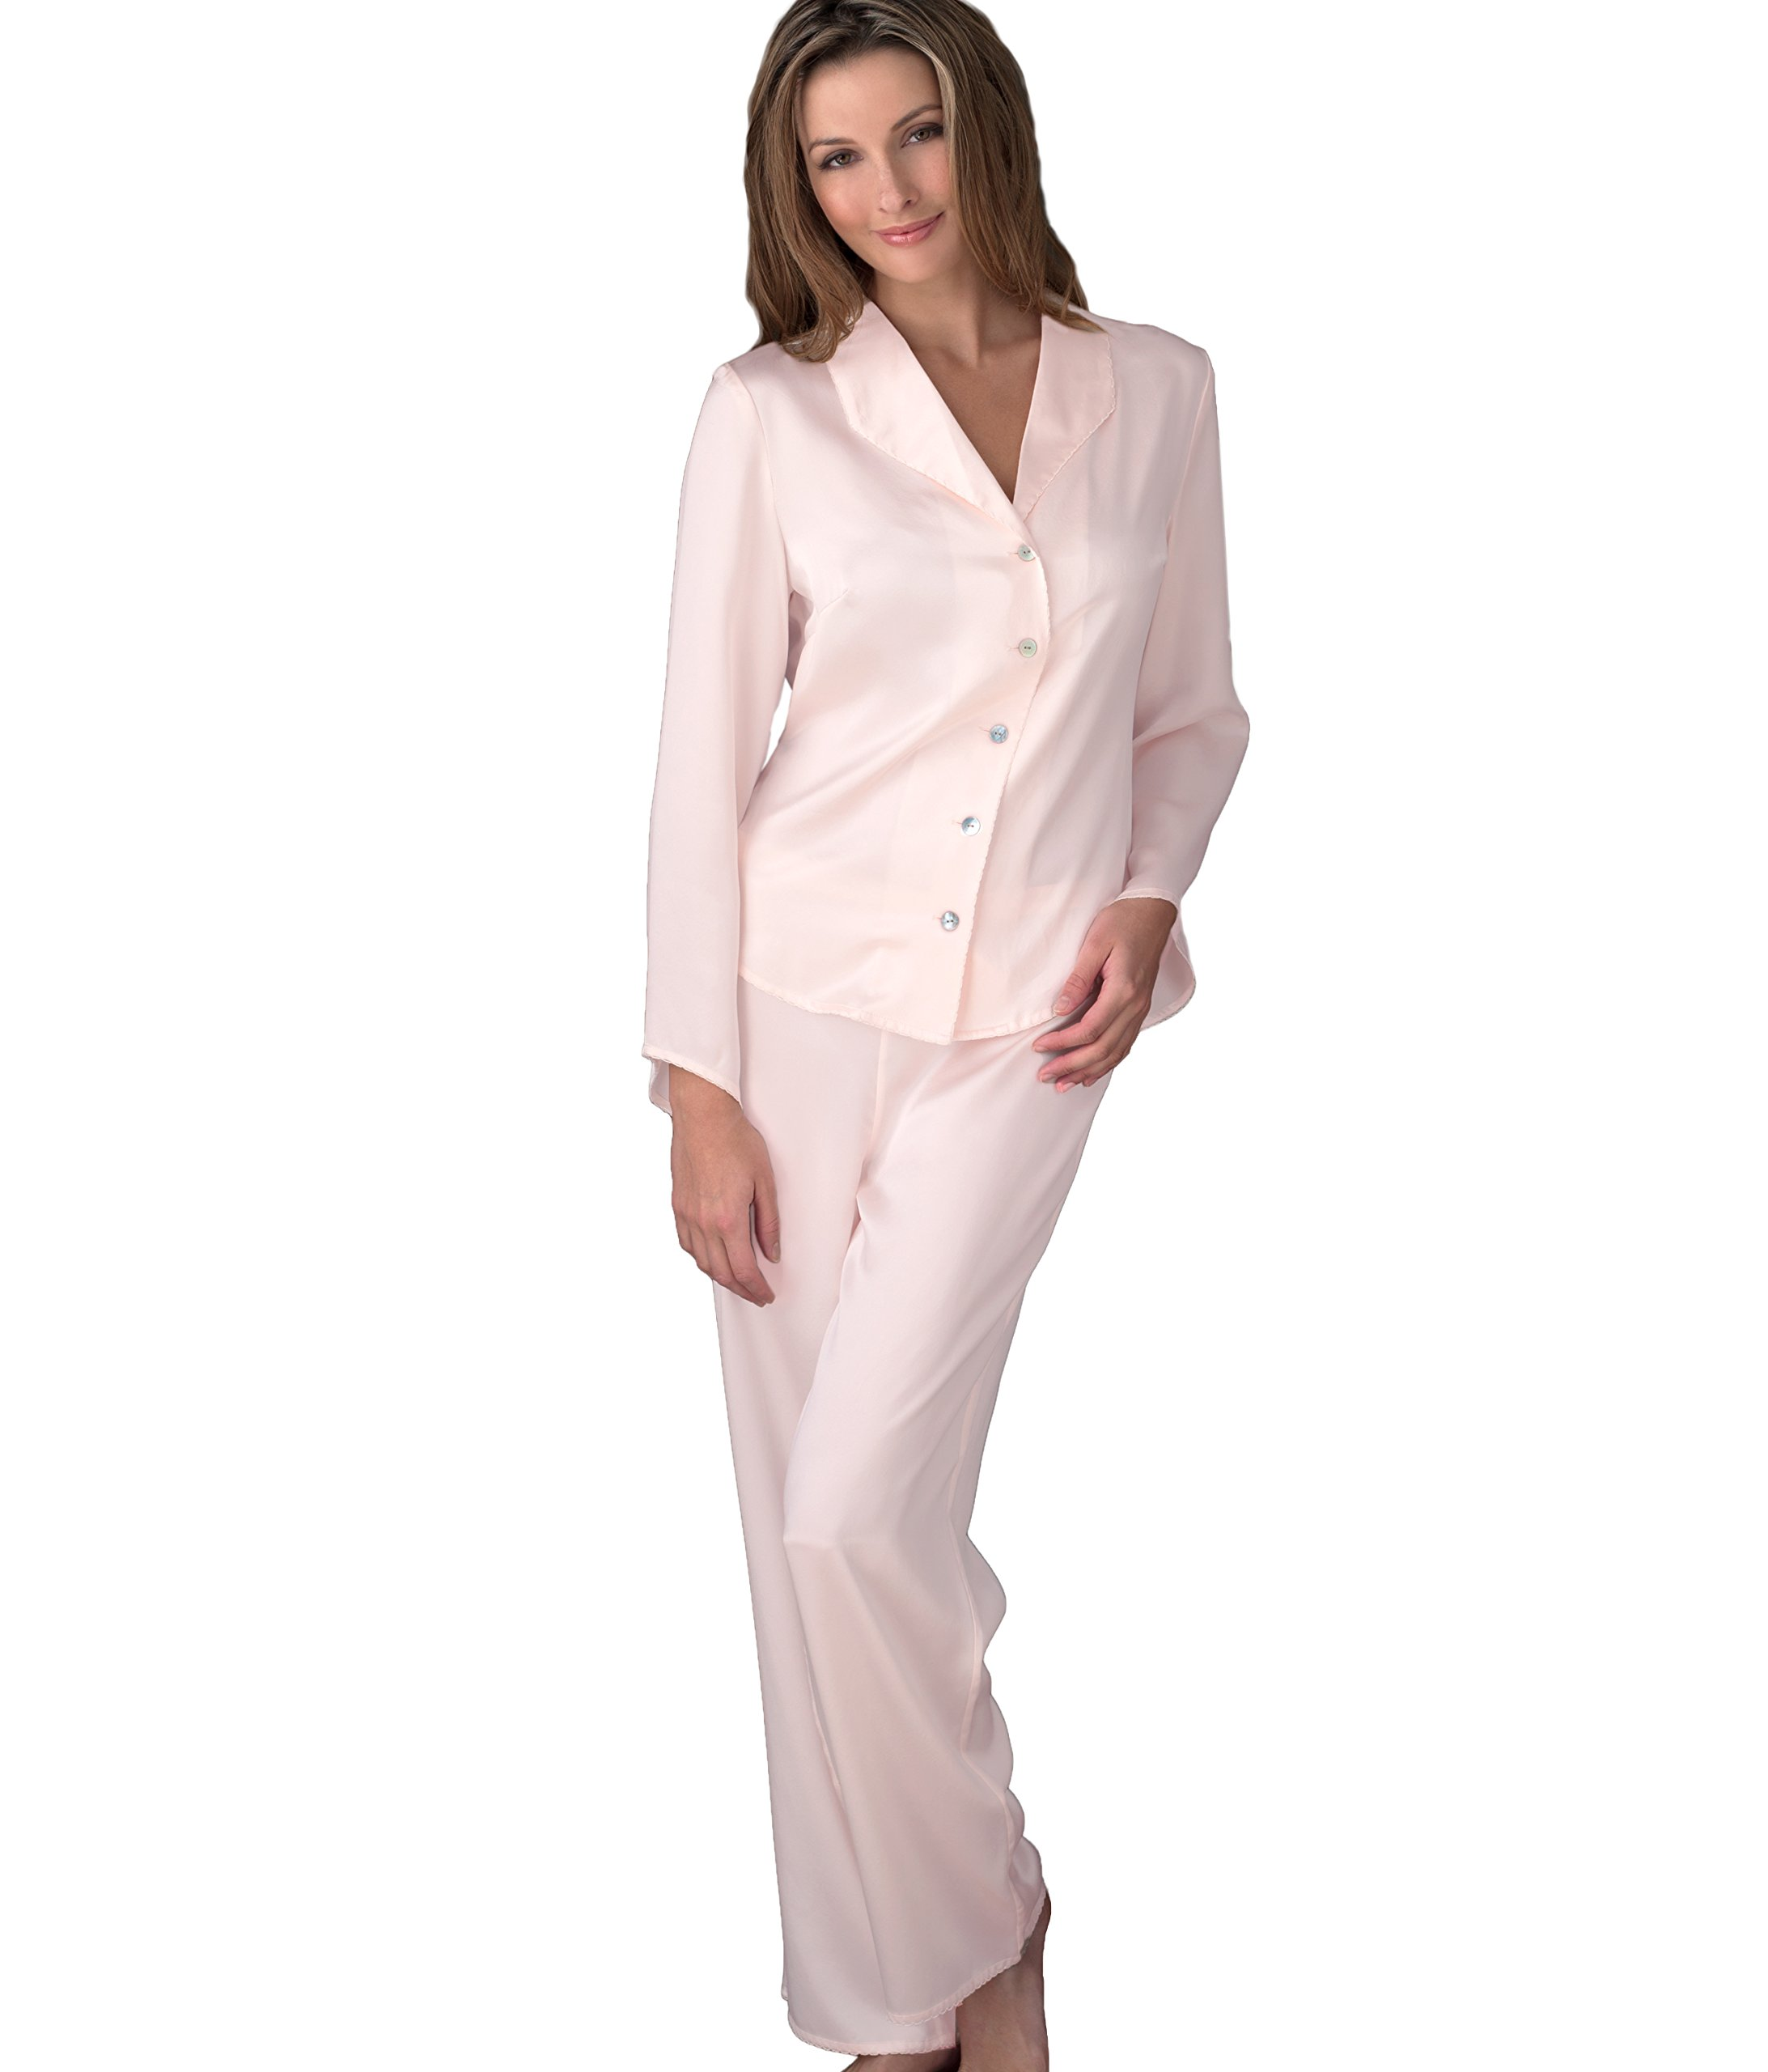 Julianna Rae Devon Women's 100% Silk Pajama, Petite, Delicate, XLP by Julianna Rae